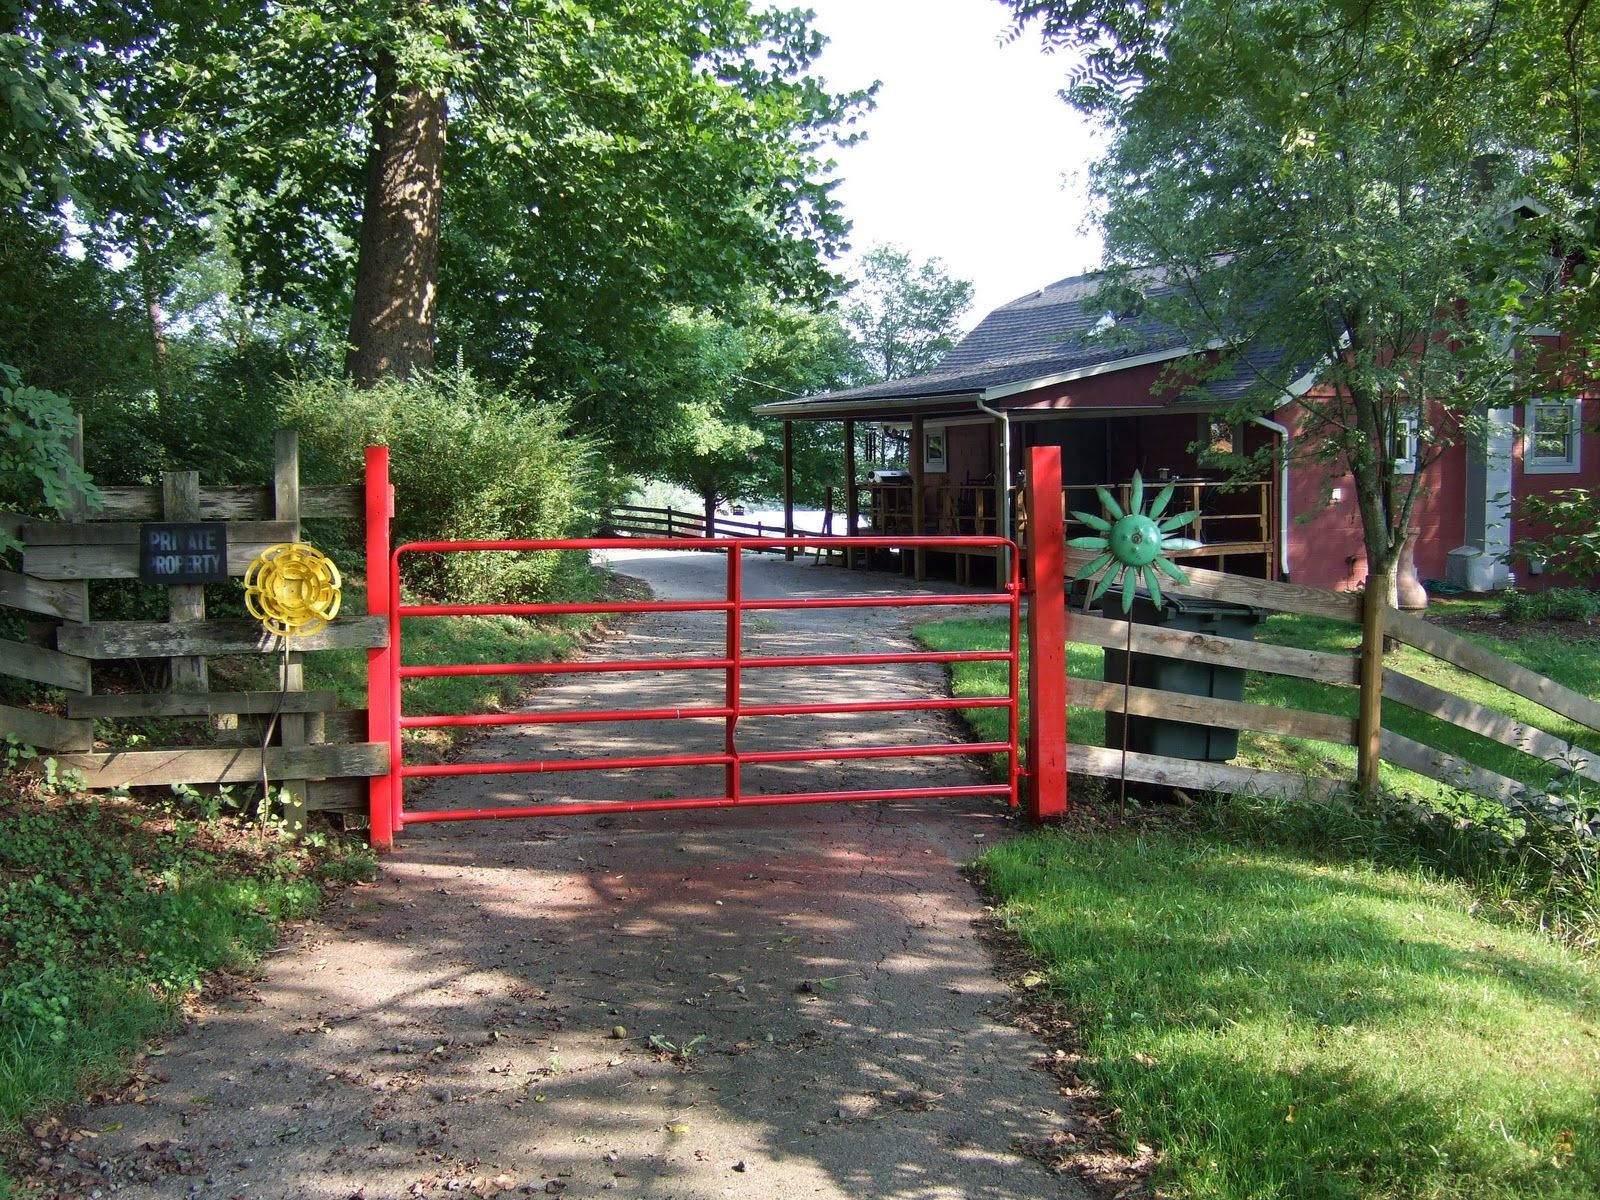 A winding private road welcomes you to your vacation on the farm...